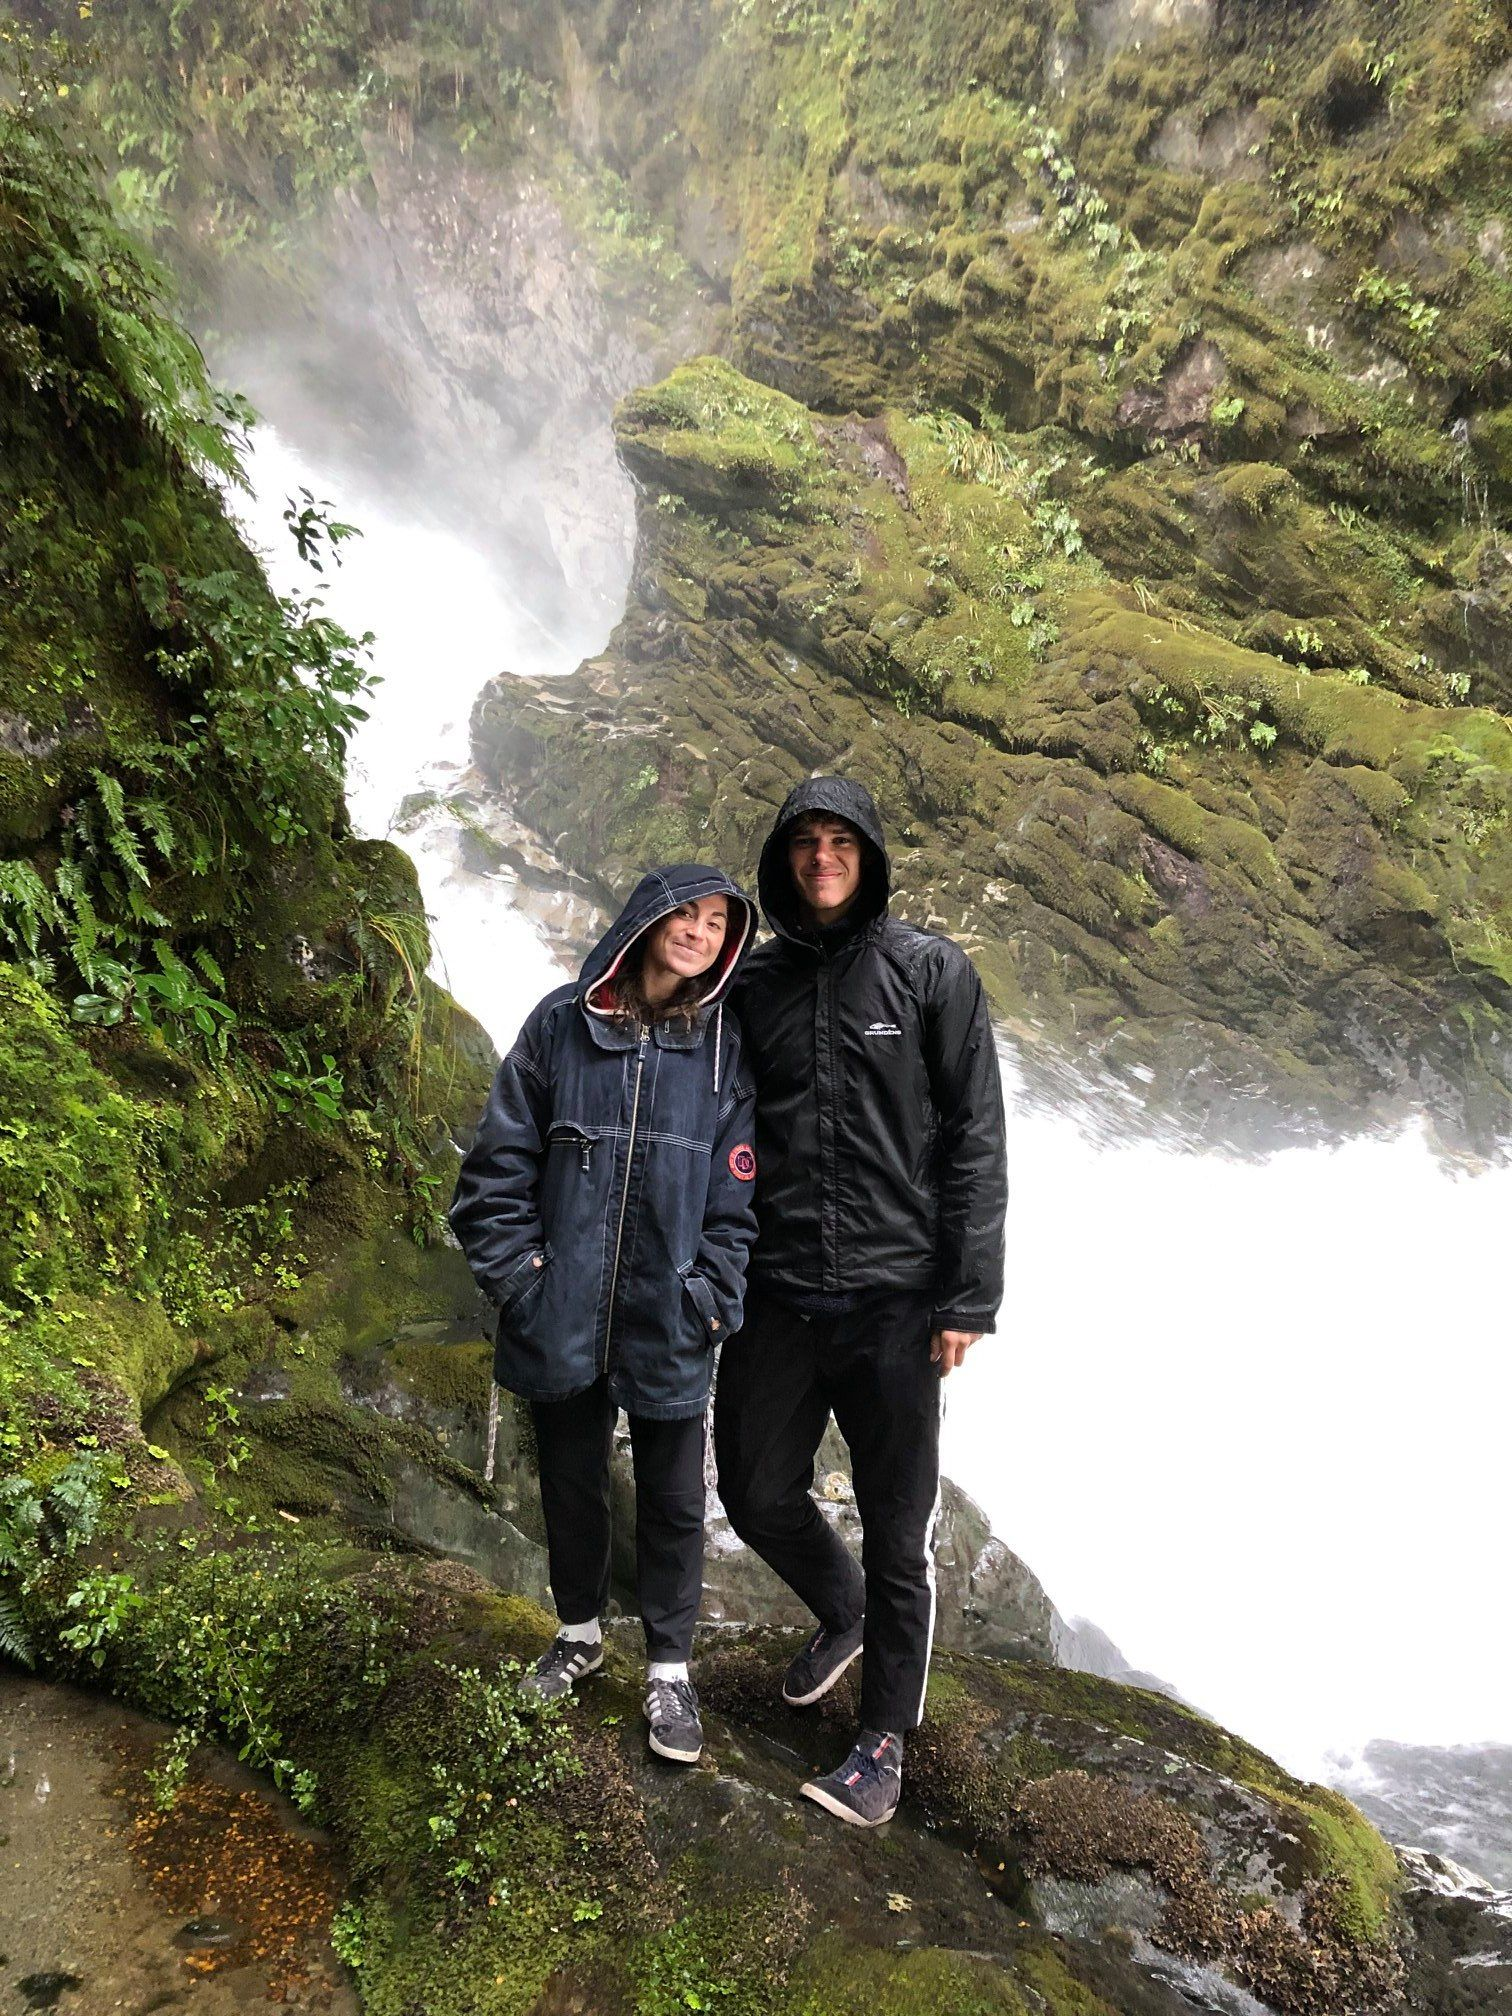 Greetings from Maya Shustik '16 & Tom Bloxam '16 from their trip to New Zealand!